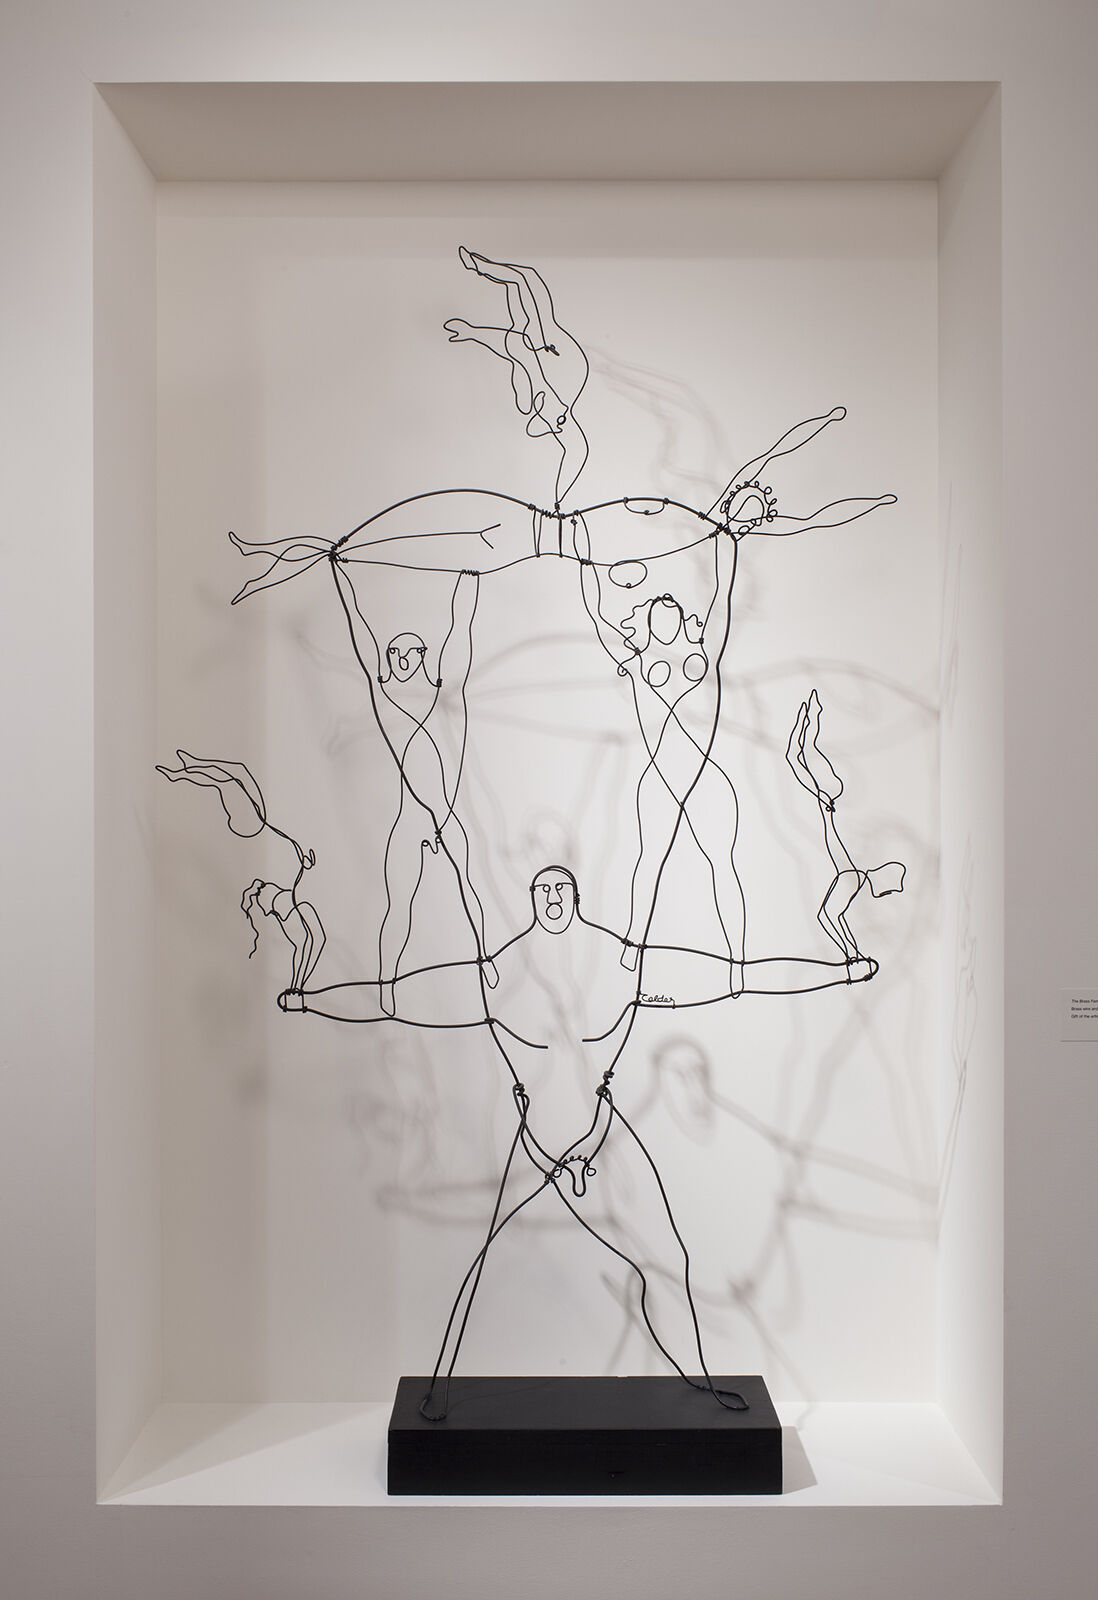 A wire sculpture of multiple figures.